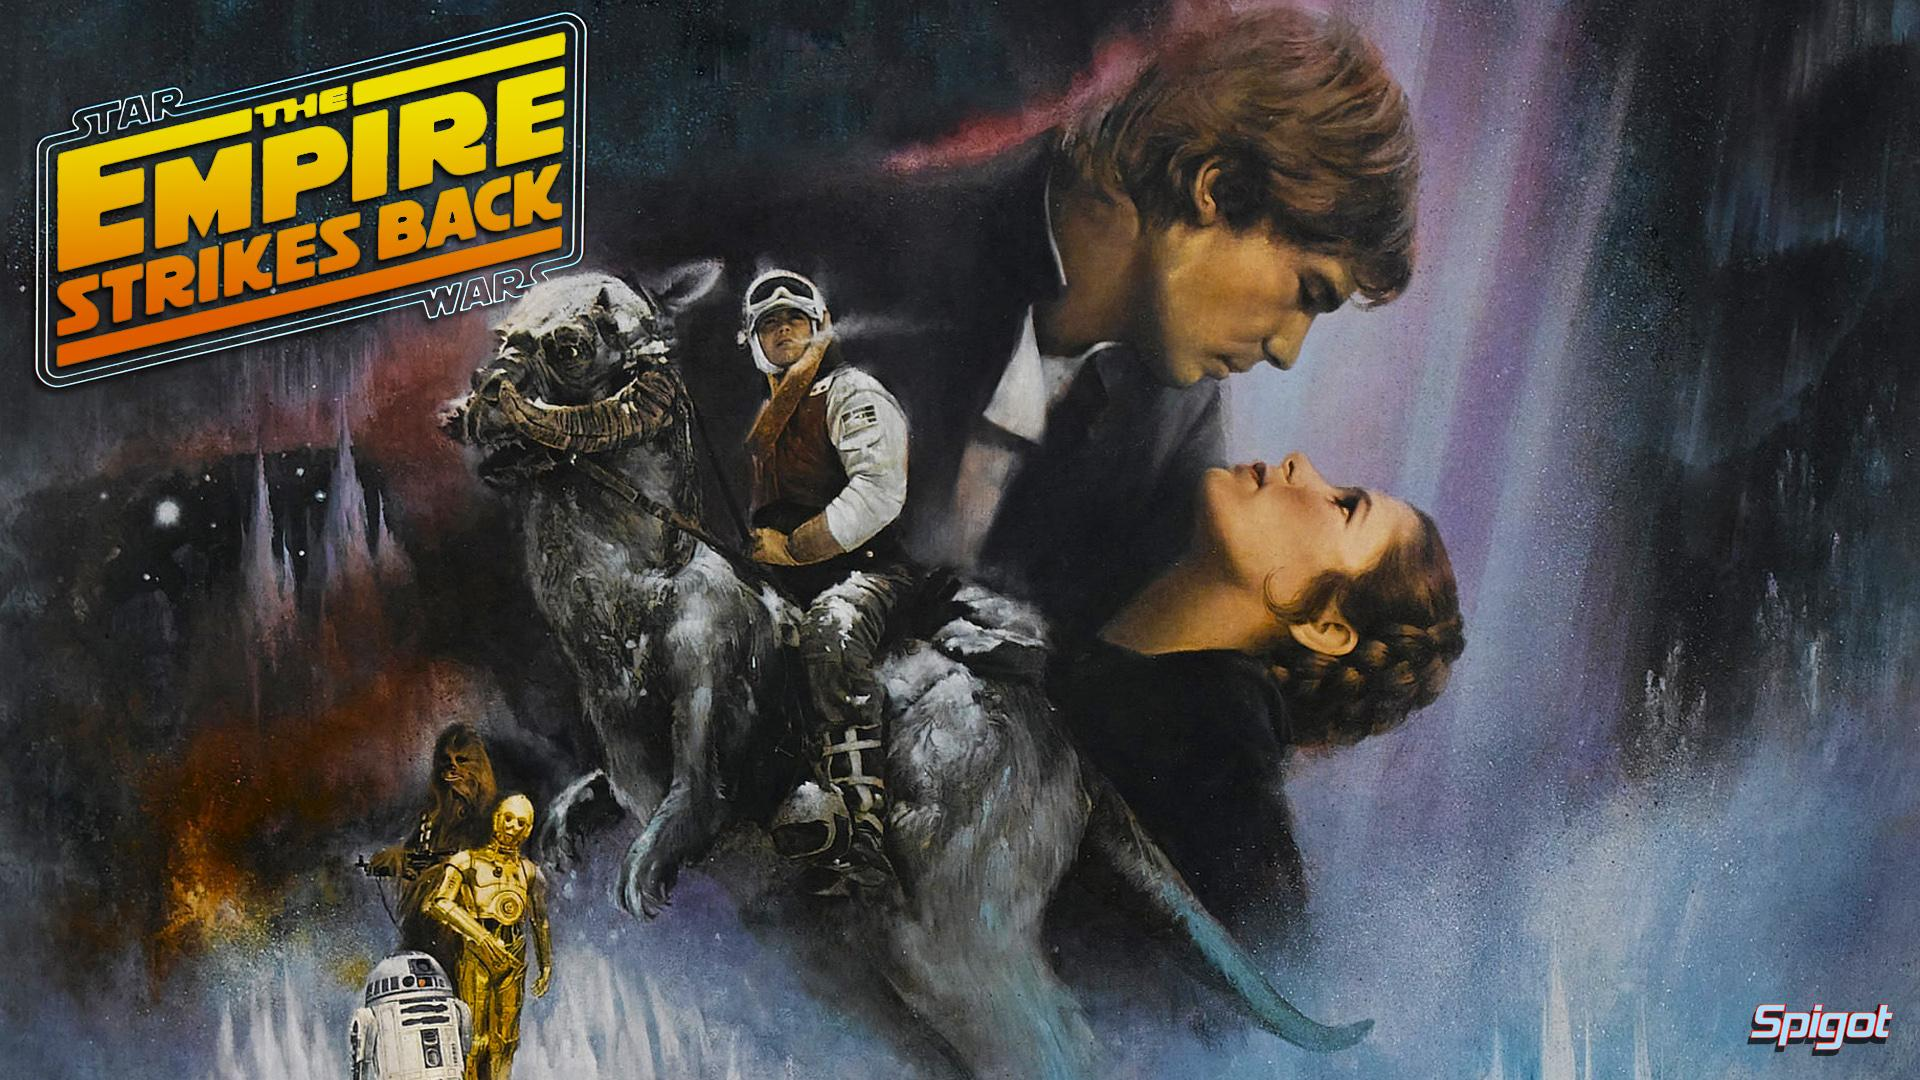 Star Wars Episode V: The Empire Strikes Back Wallpapers and